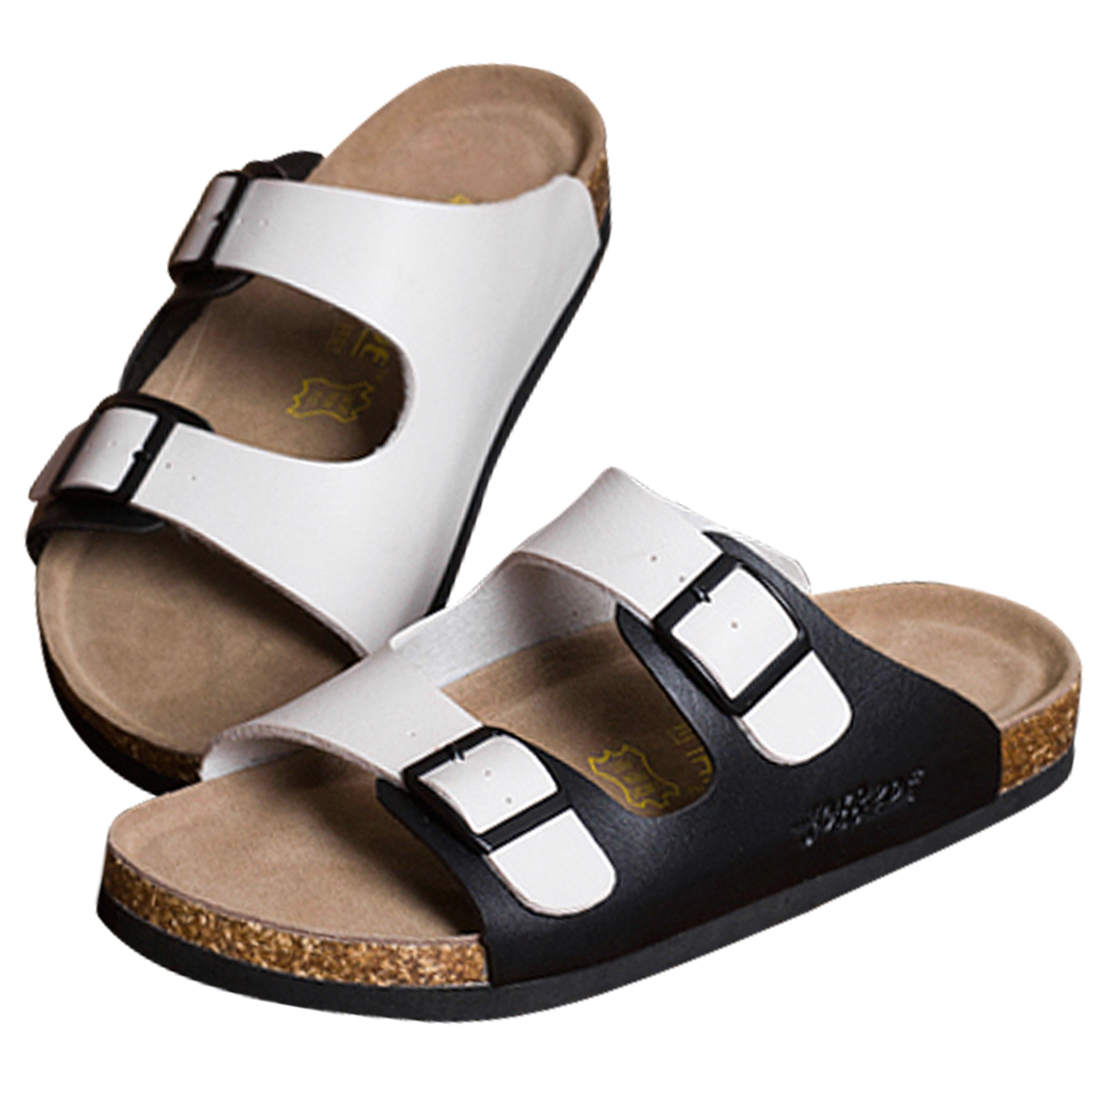 Mens Summer Leisure Two Buckles Sandals White Black US 8